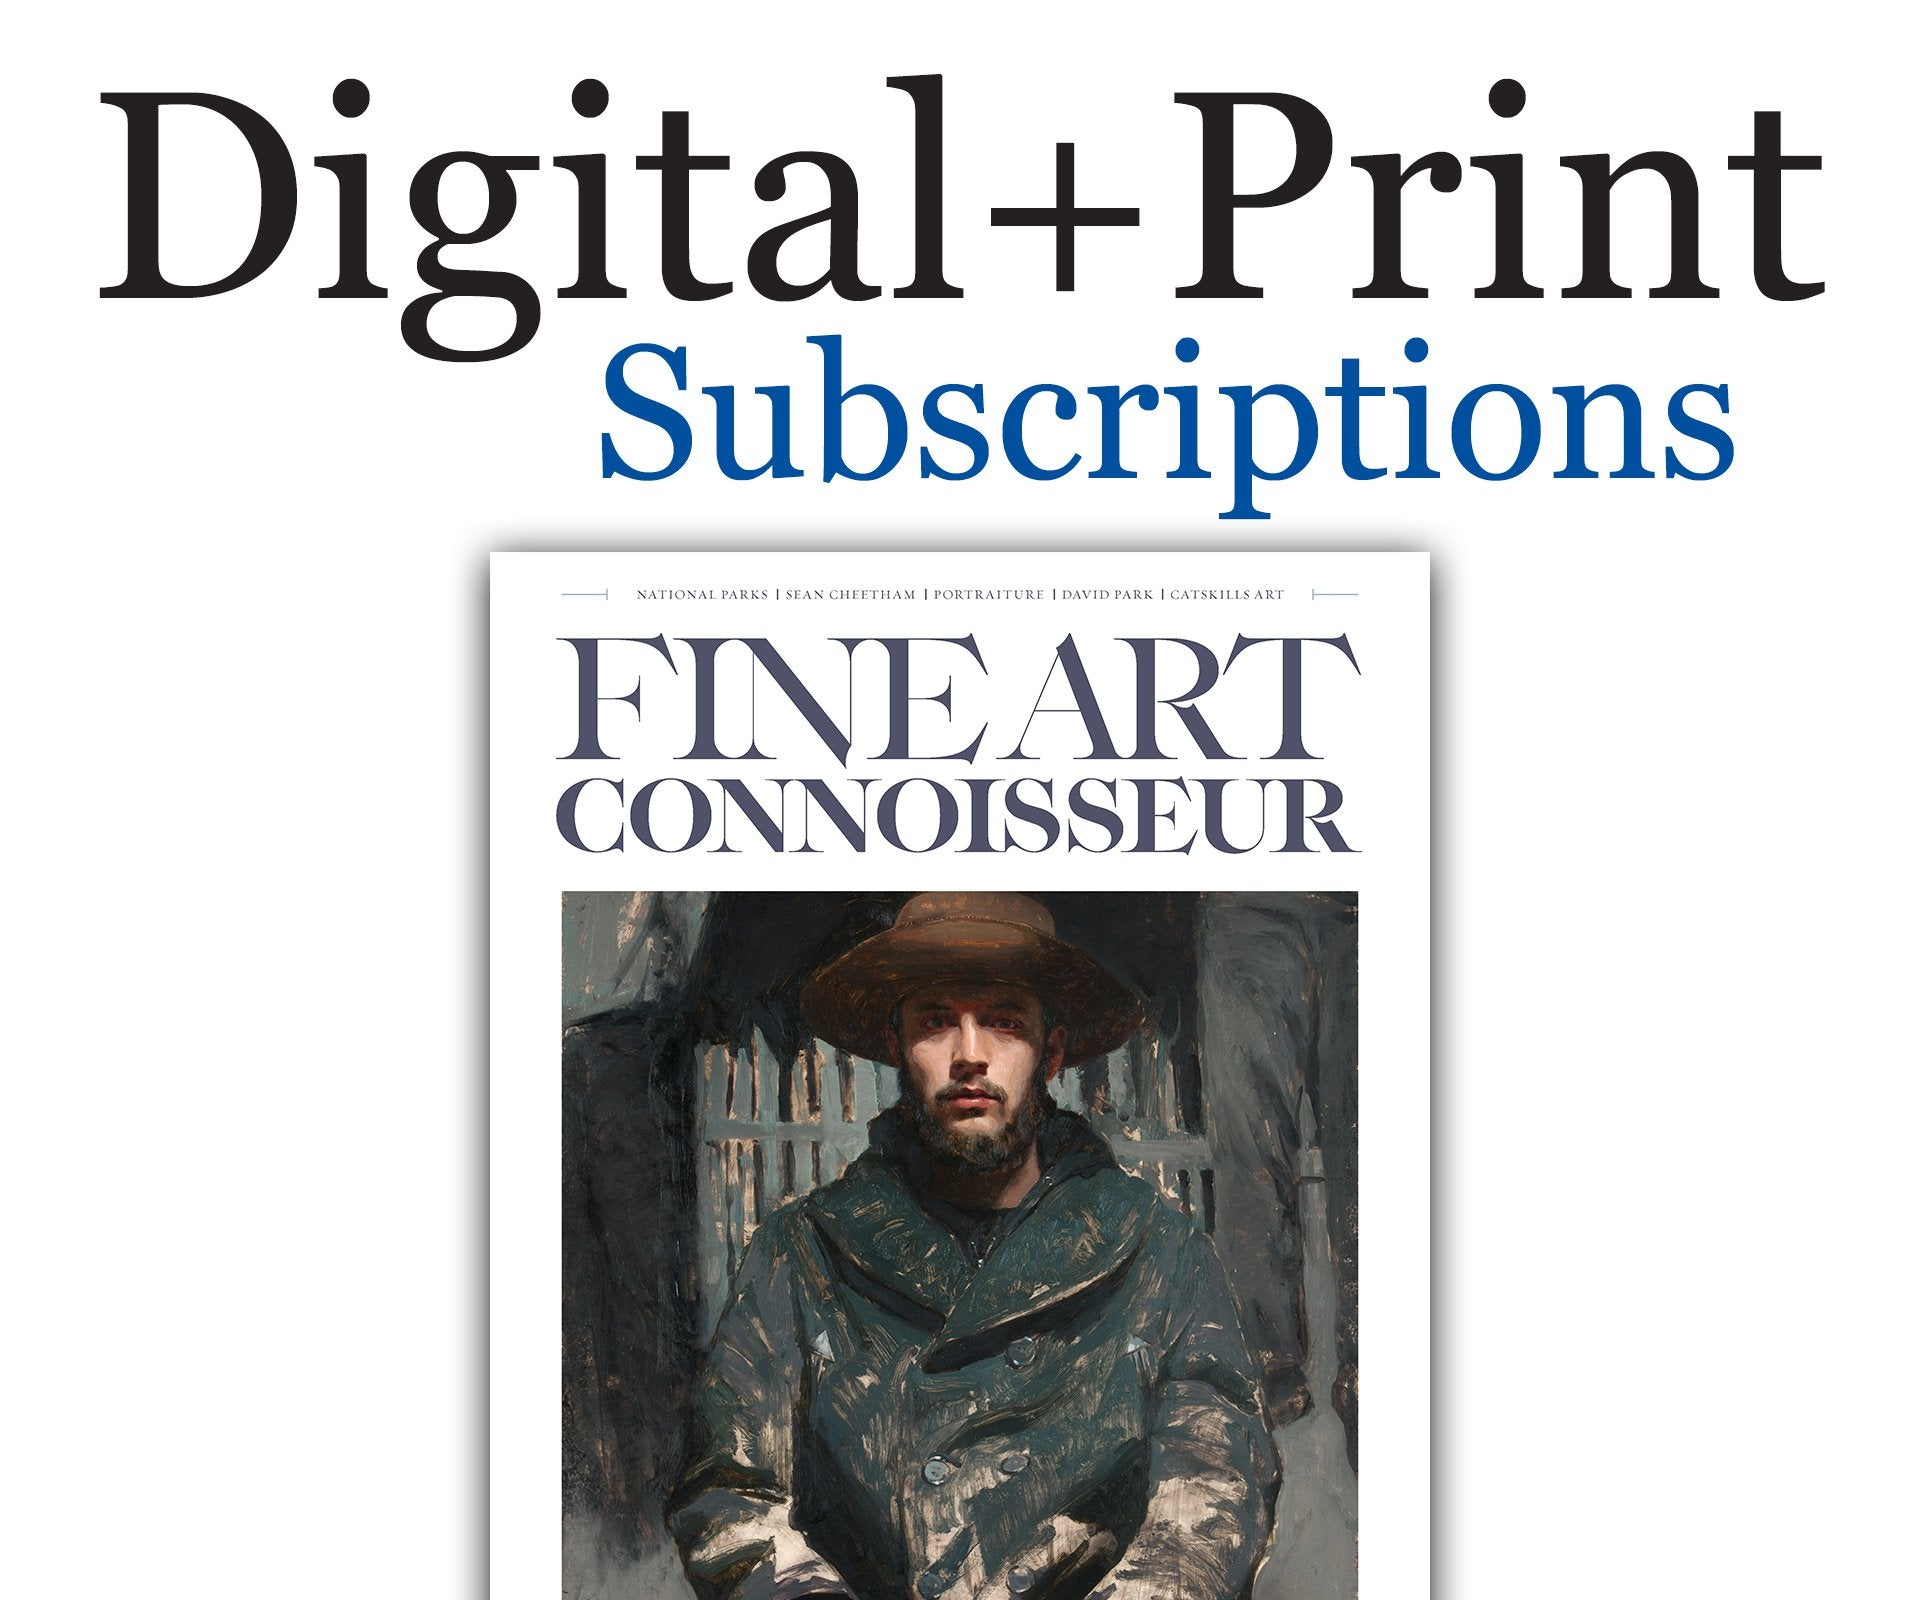 Fine Art Connoisseur Magazine Subscription